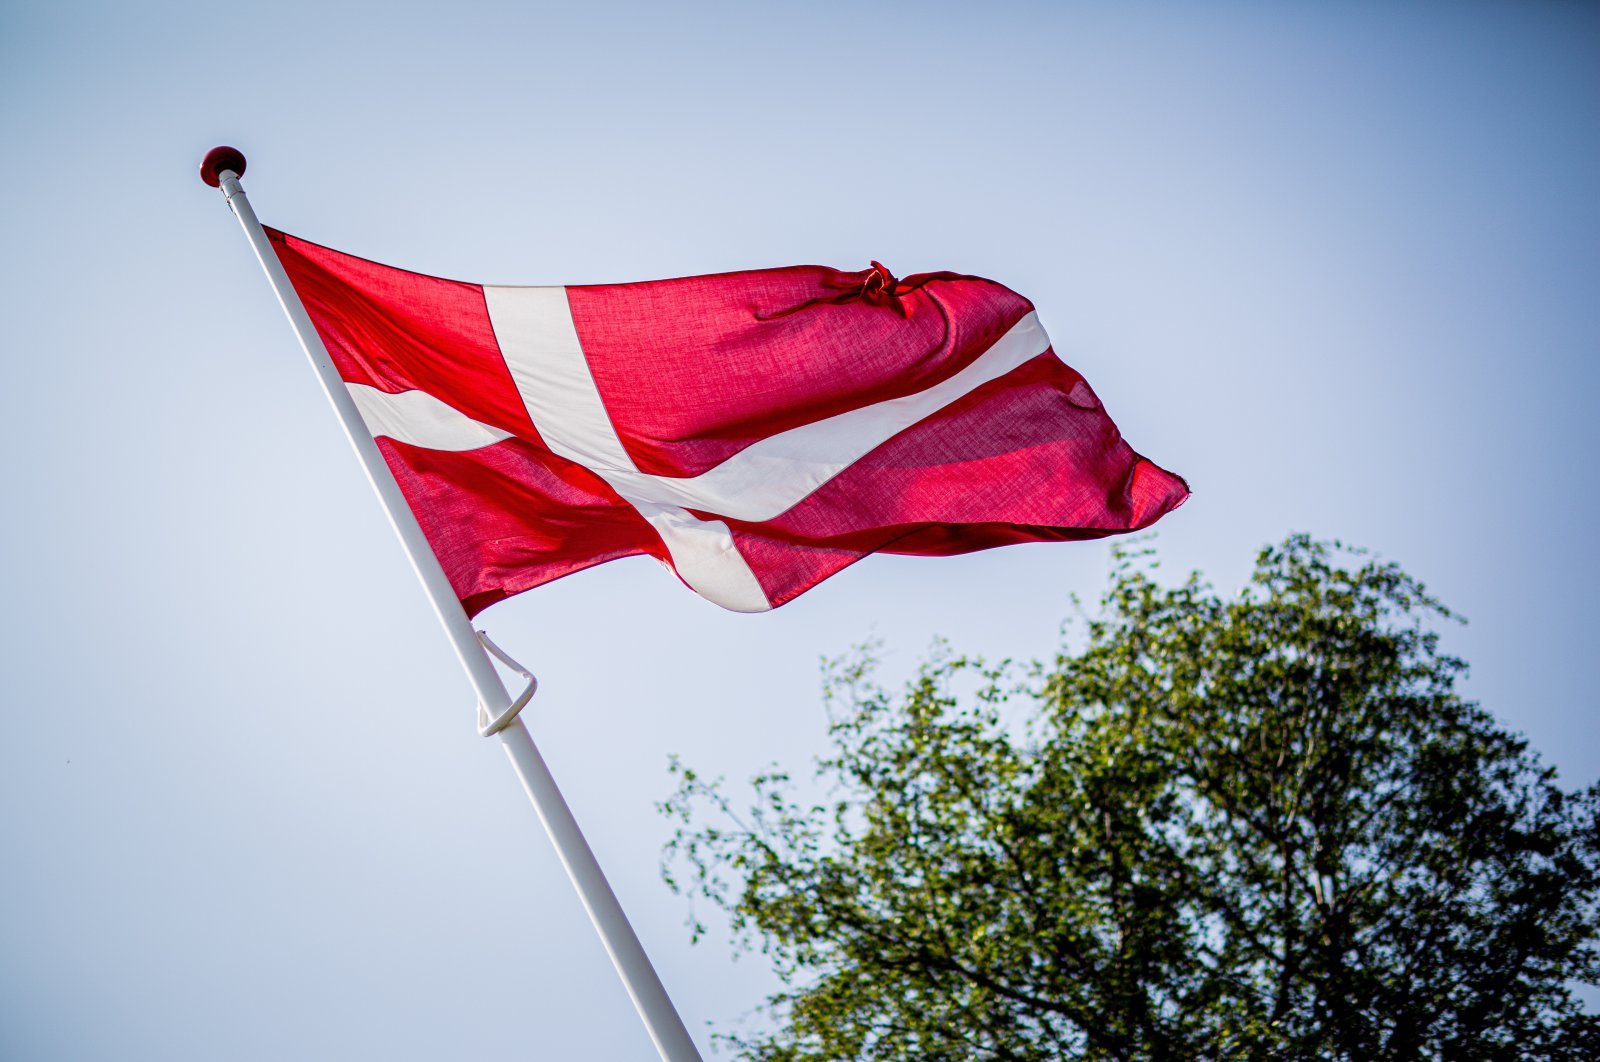 This undated file photo shows a Danish flag flying in the wind.